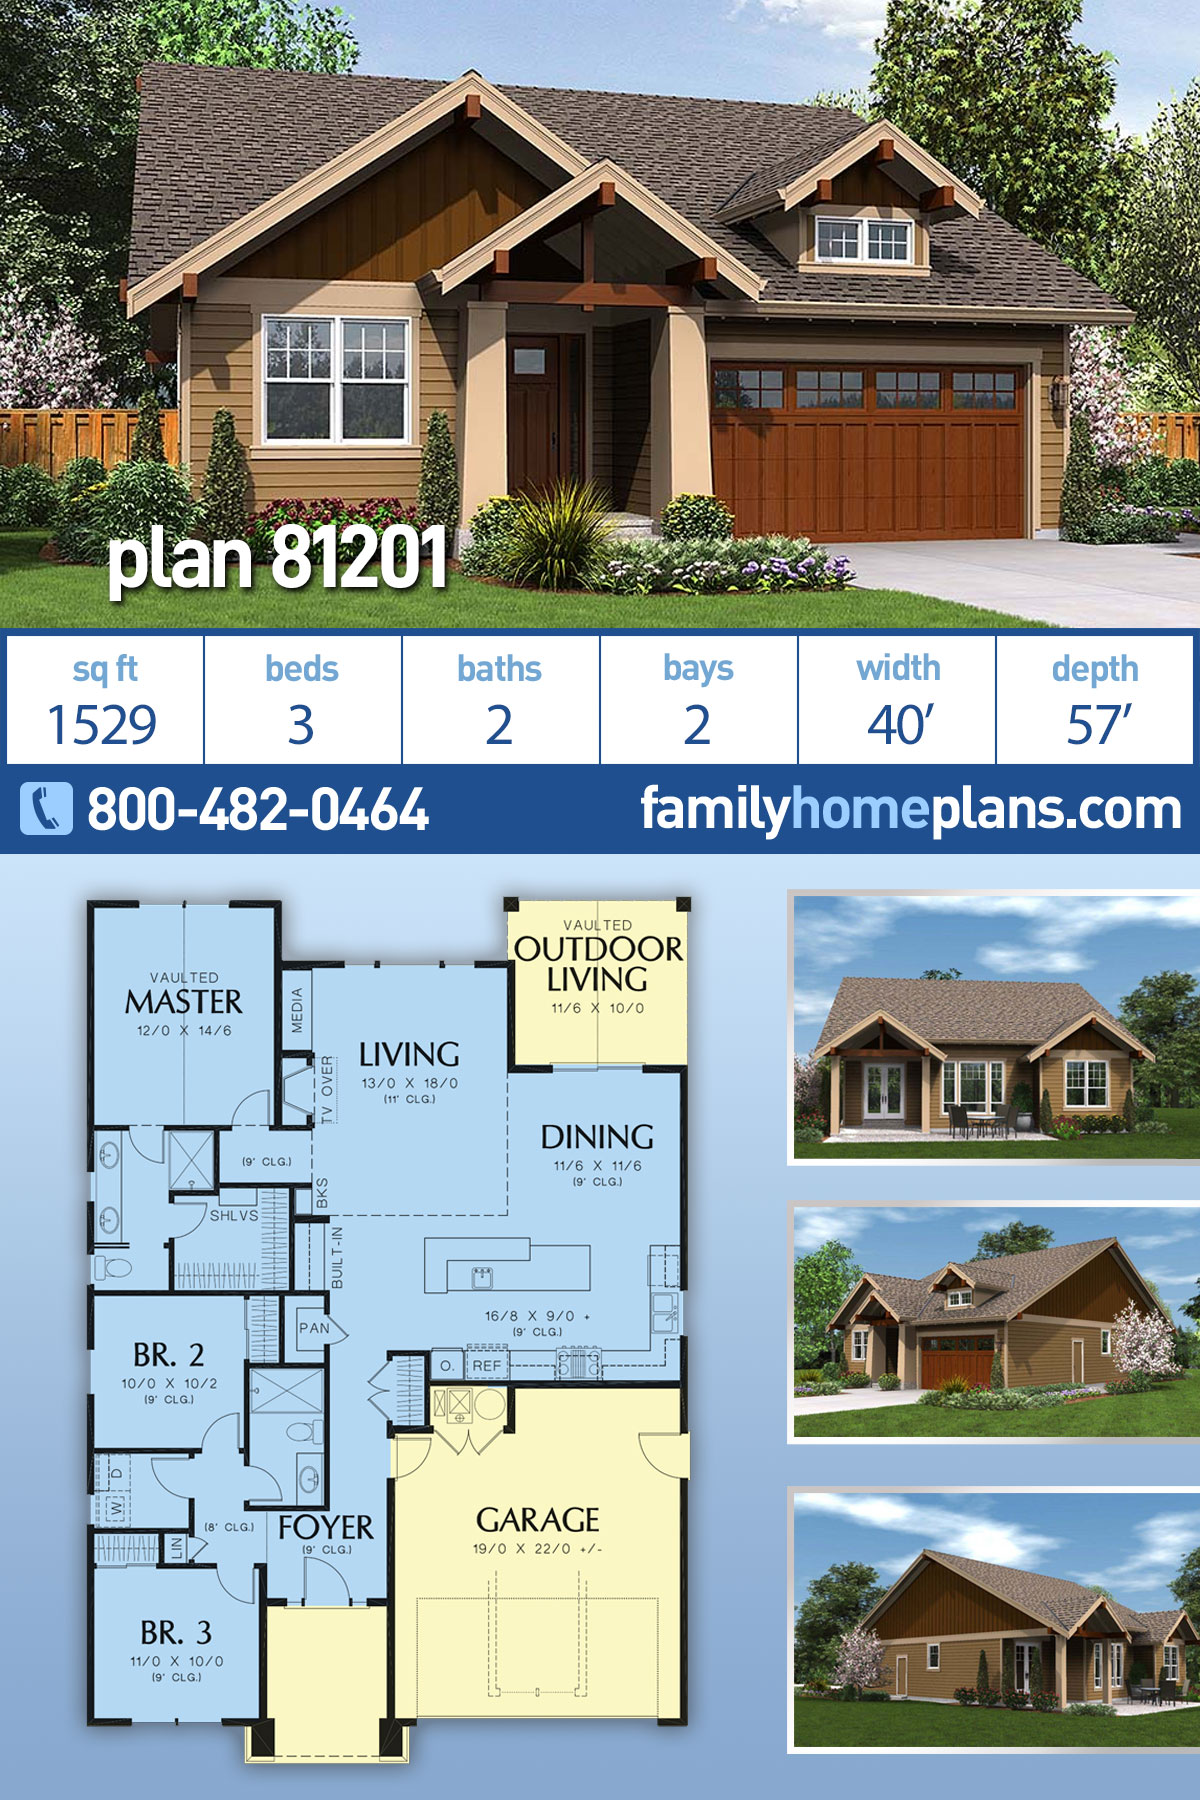 Bungalow, Cottage, Craftsman House Plan 81201 with 3 Beds, 2 Baths, 2 Car Garage